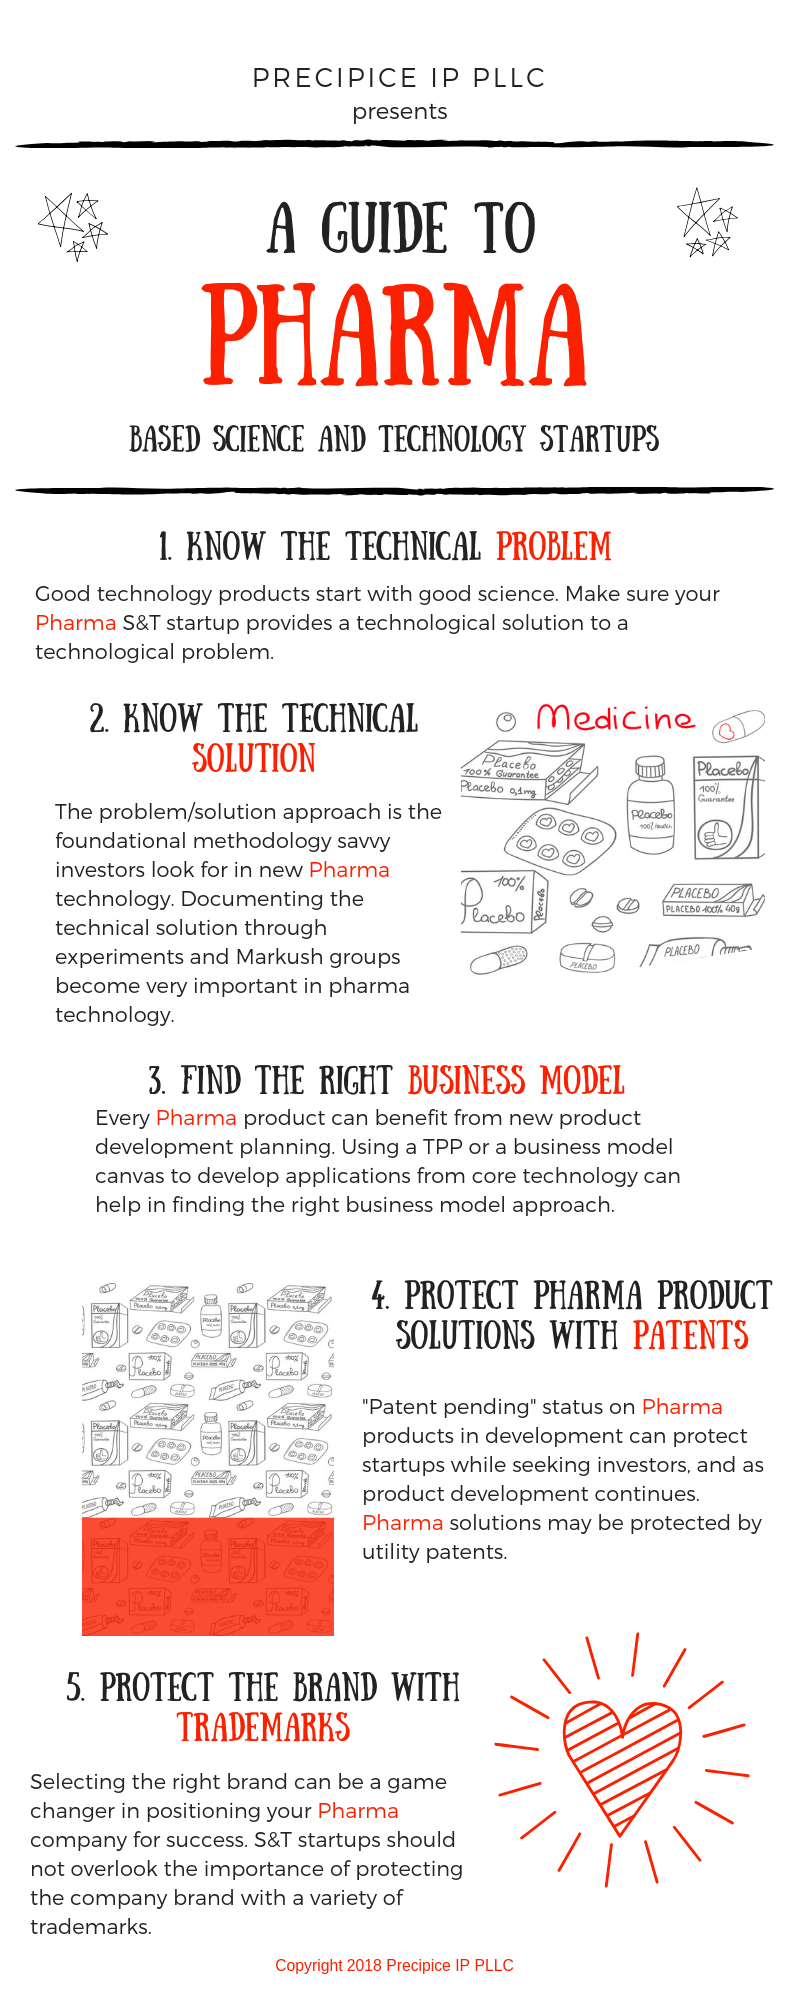 Precipice IP PLLC Infographic-Pharma